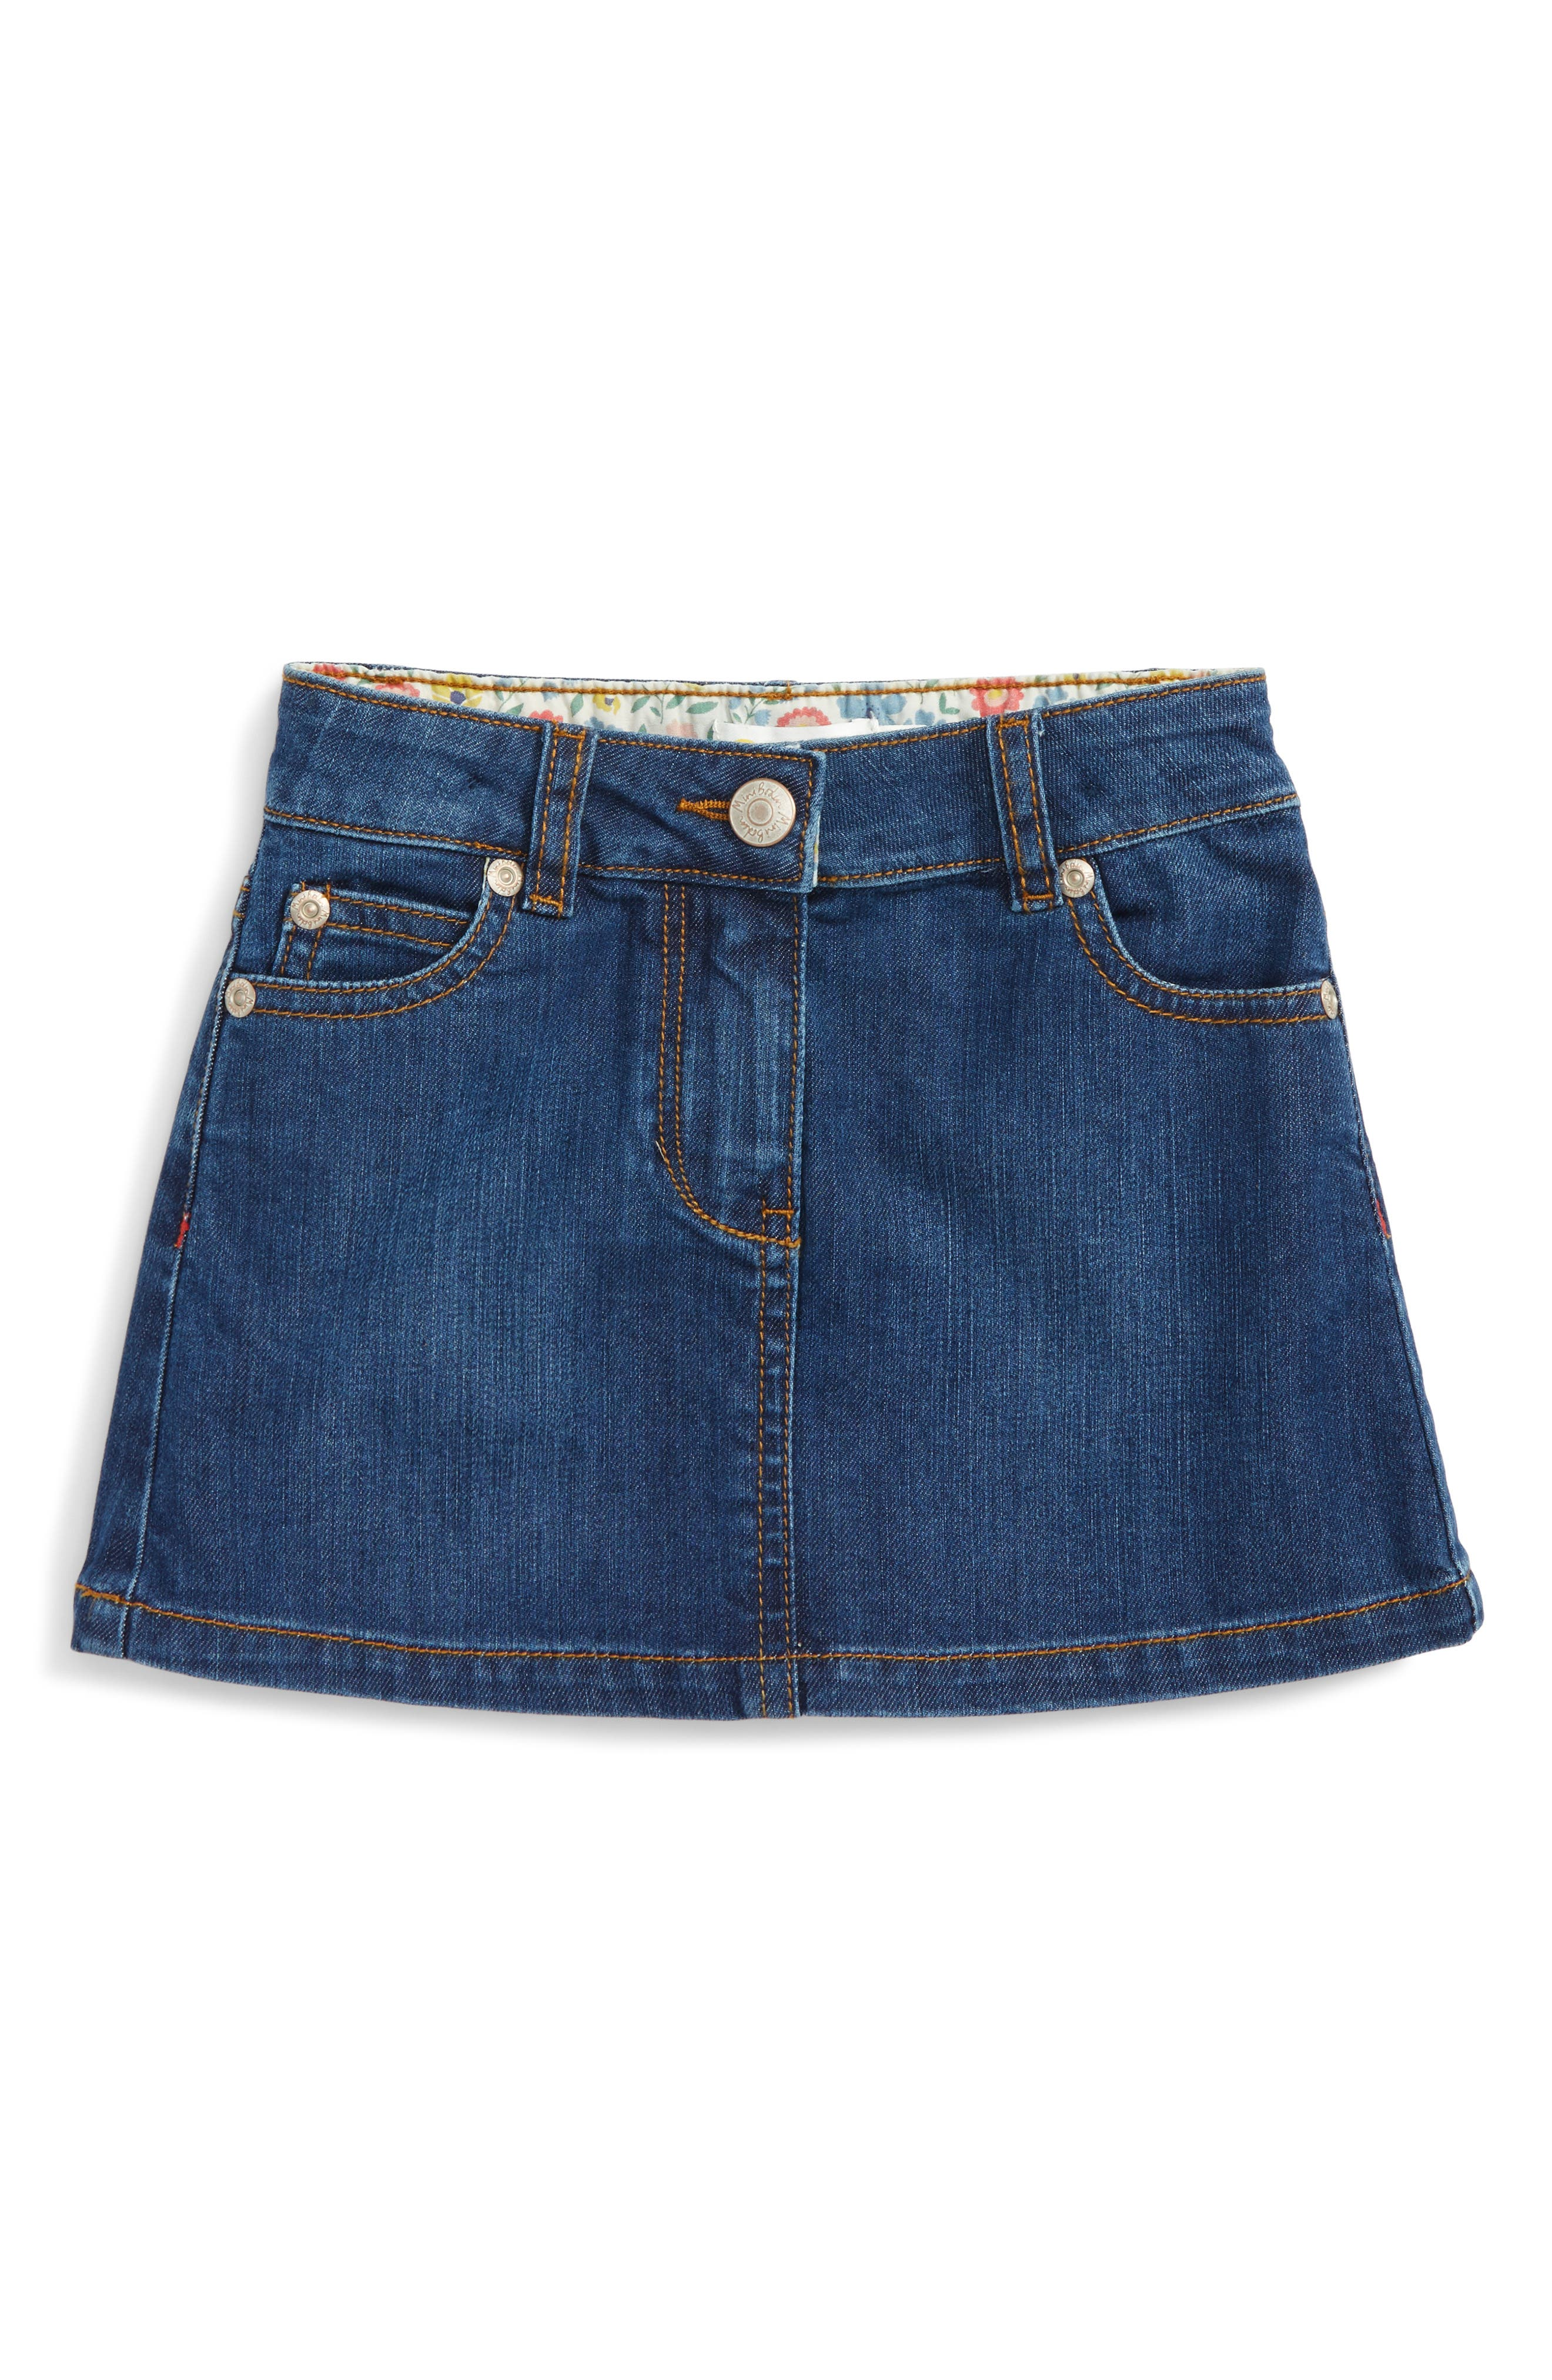 Heart Pocket Denim Skirt,                             Main thumbnail 1, color,                             Blue Vintage